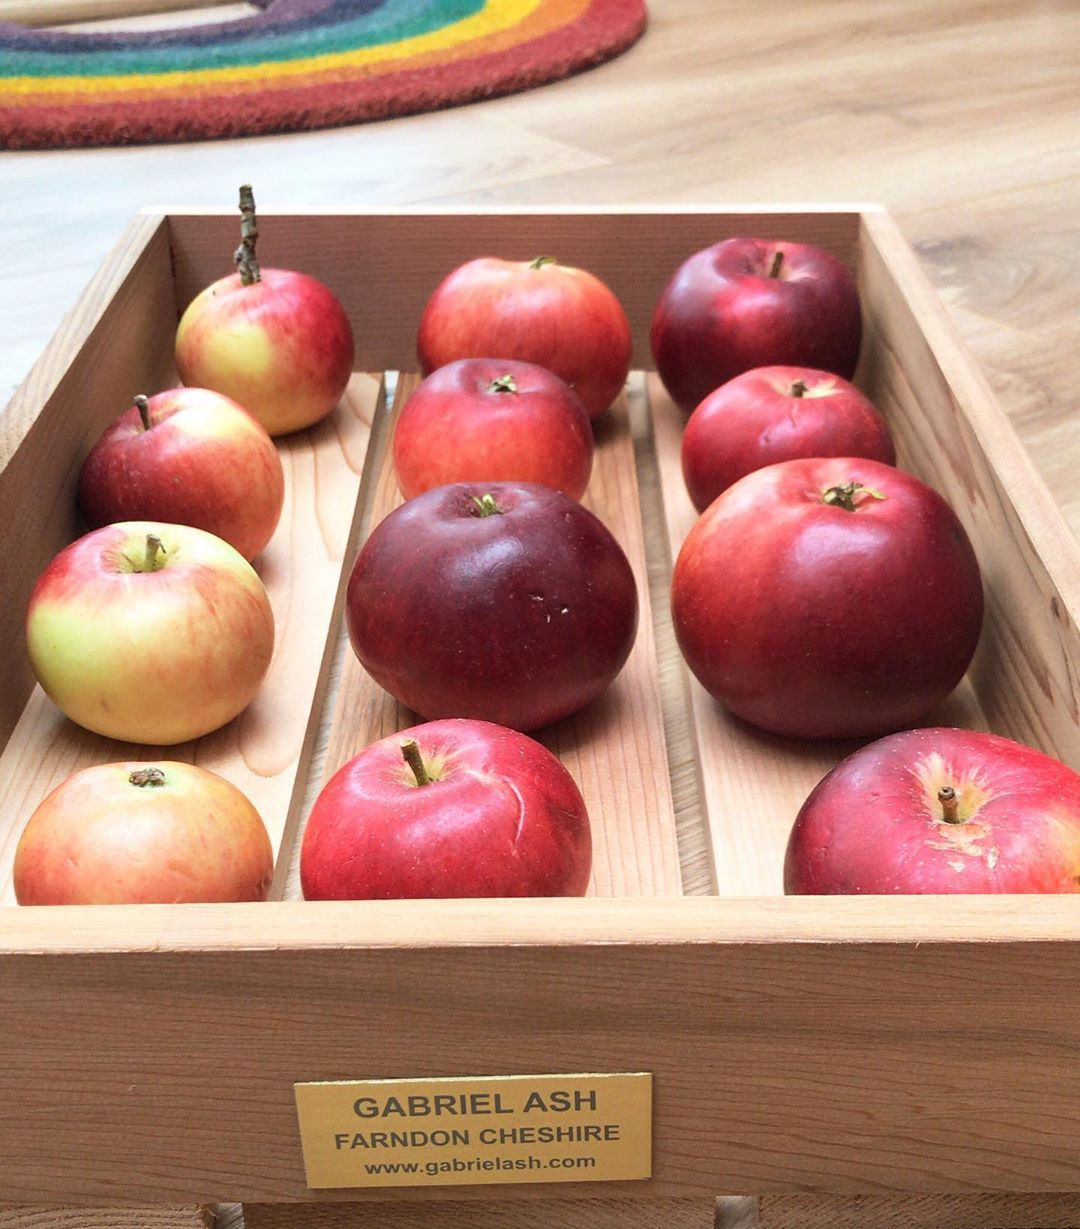 That's another tray of apples harvested and ready for storage until they get used in an apple pie or simply with our lunches .